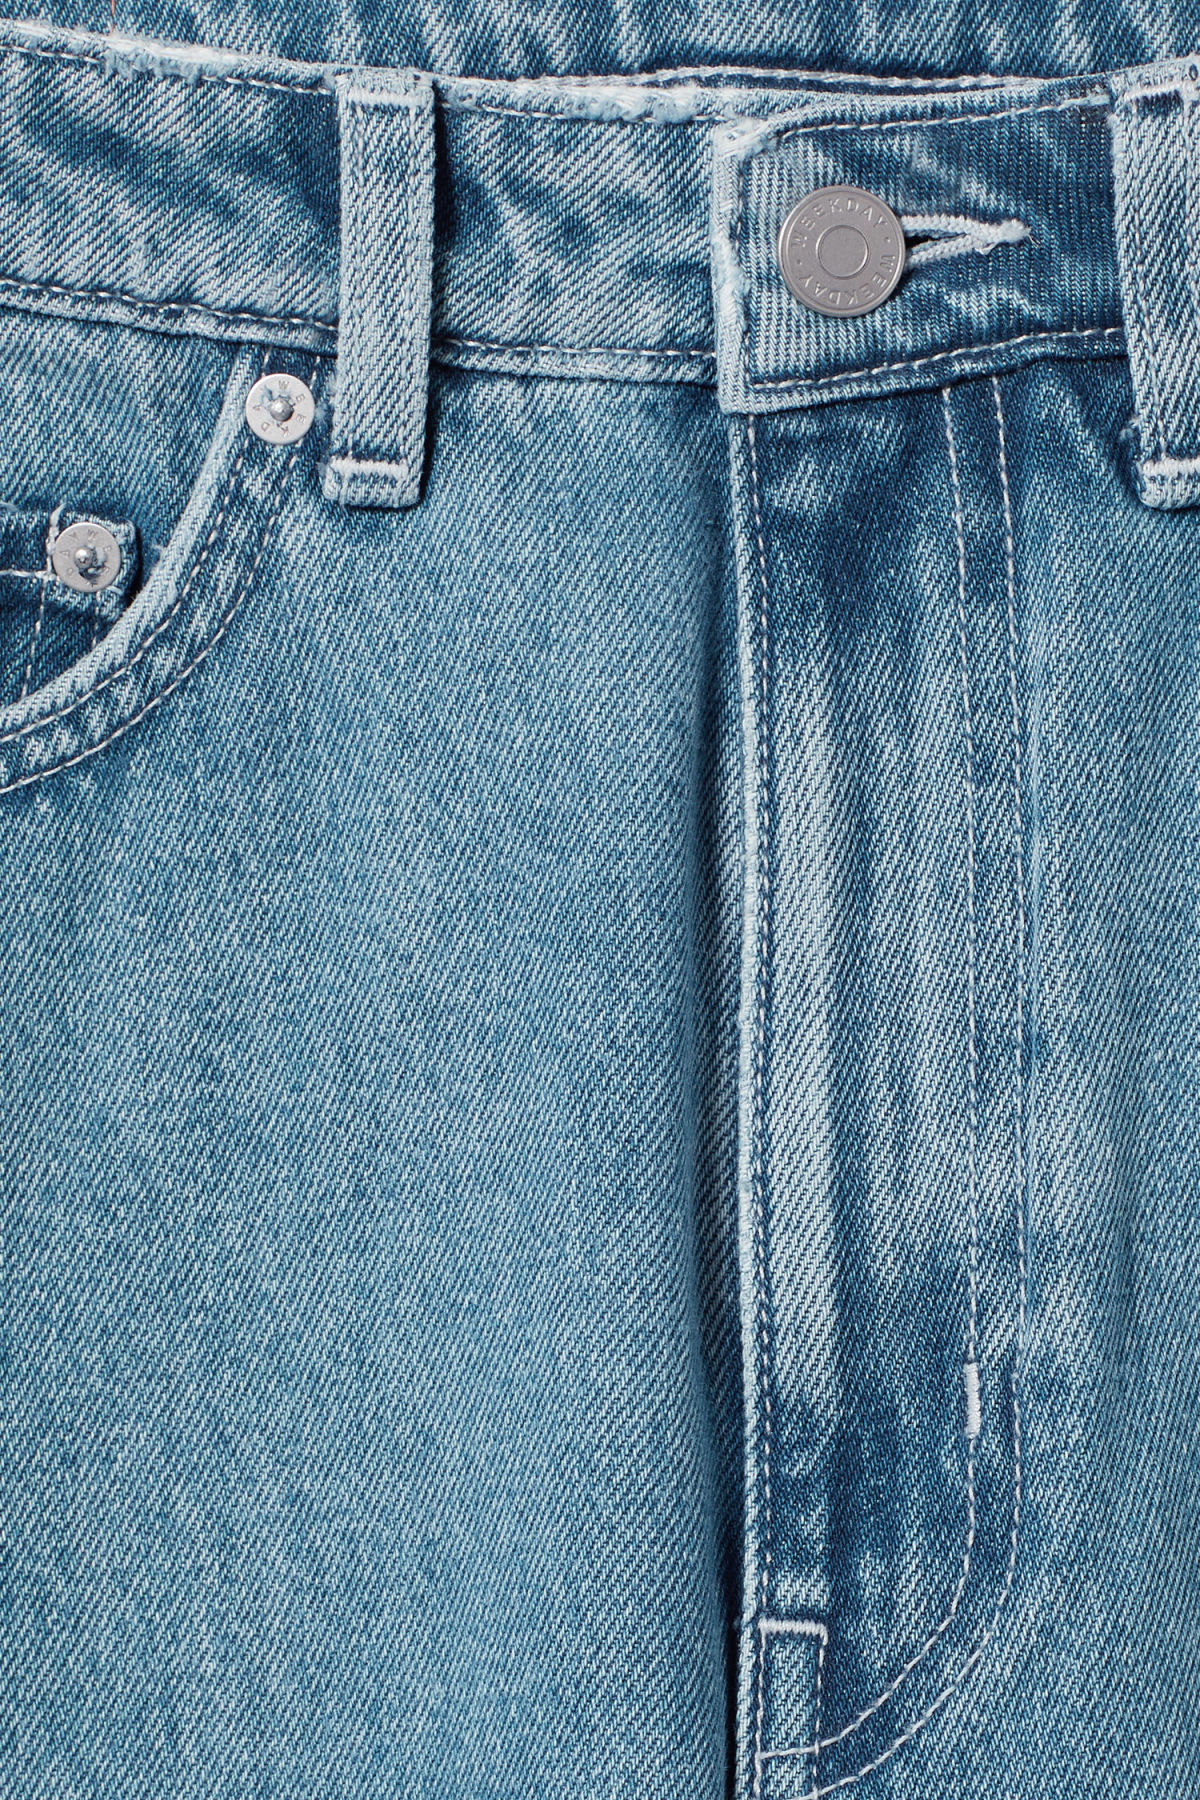 Detailed image of Weekday row sky blue jeans in blue